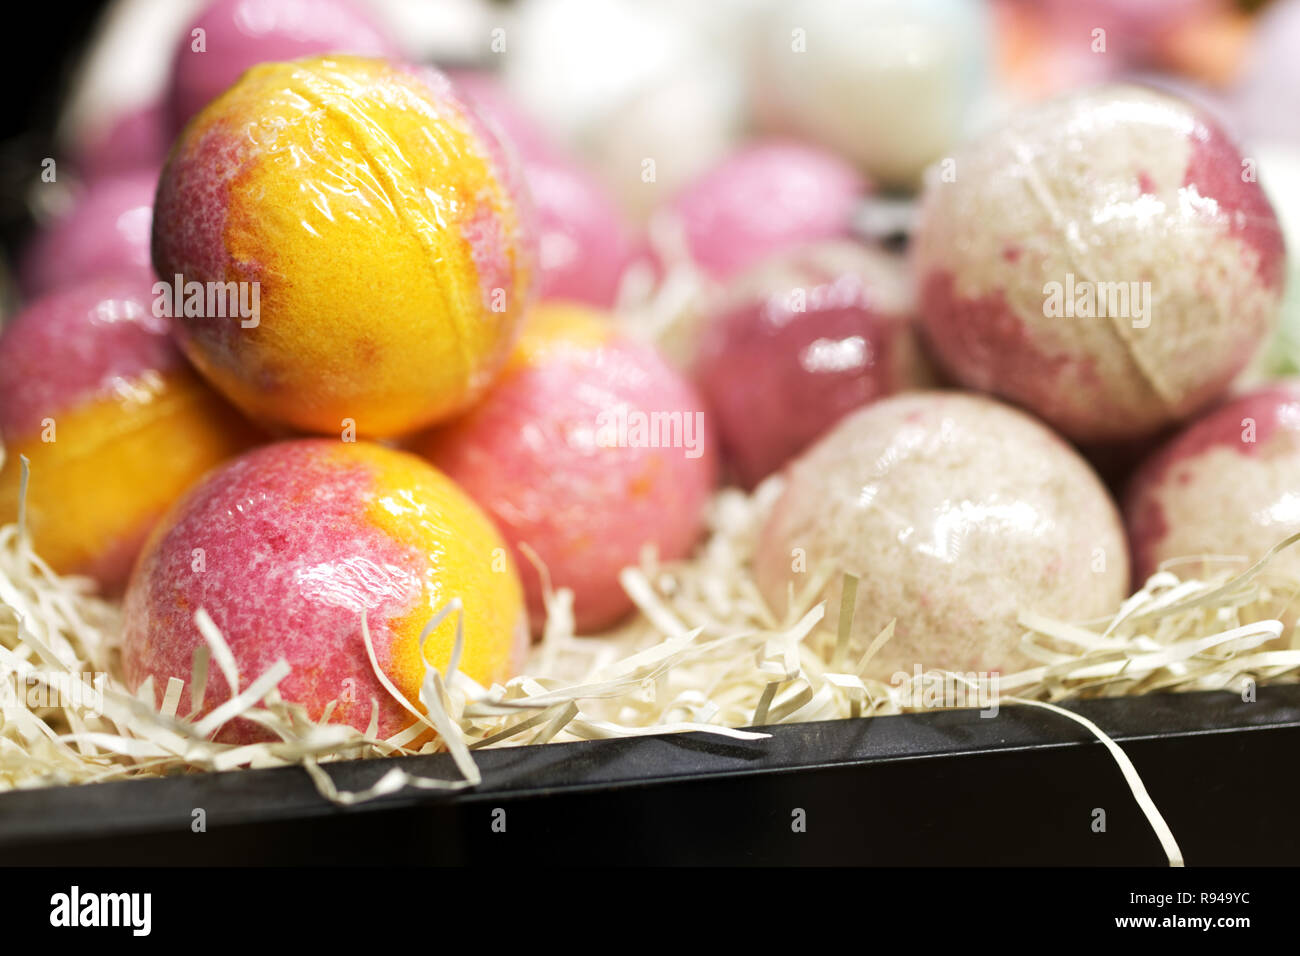 Aromatic bath bomb on a market stall. Selective focus - Stock Image